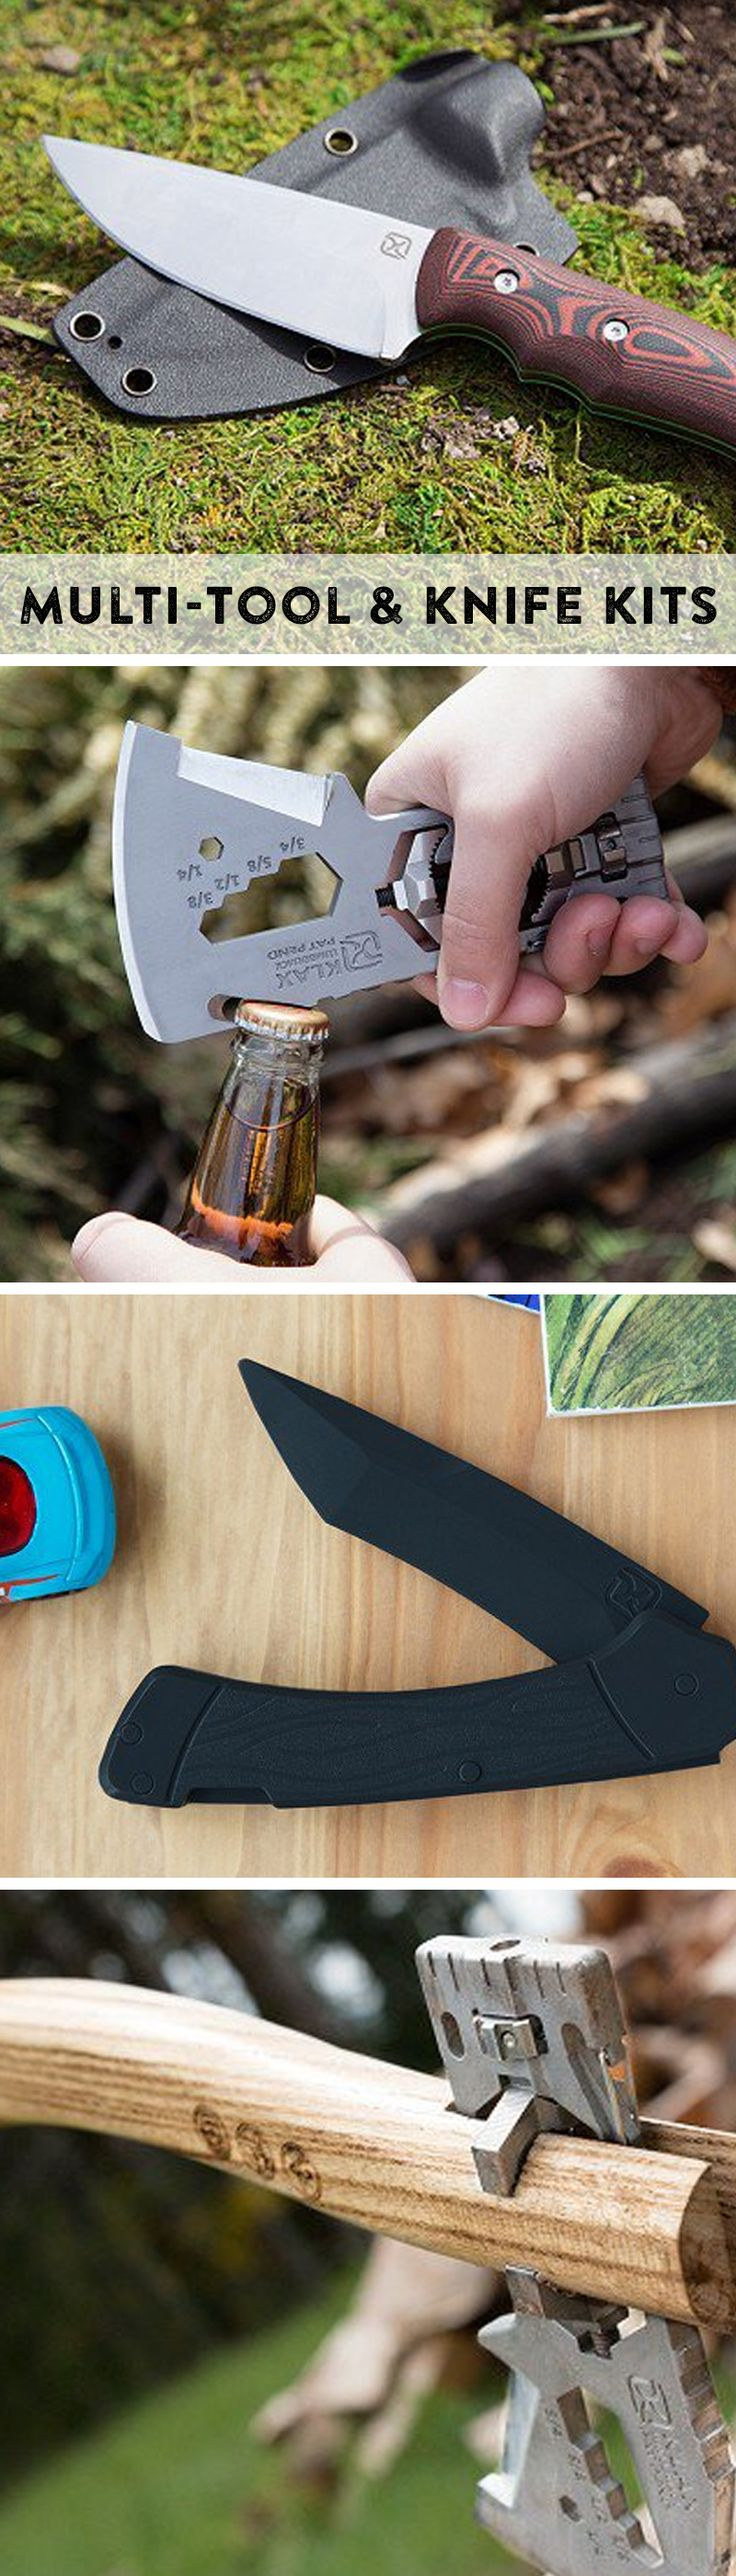 Serious about their knives—and safety. From rugged, innovative axes and knives for grown-ups to a plastic knife kit that teaches kids proper use and handling.